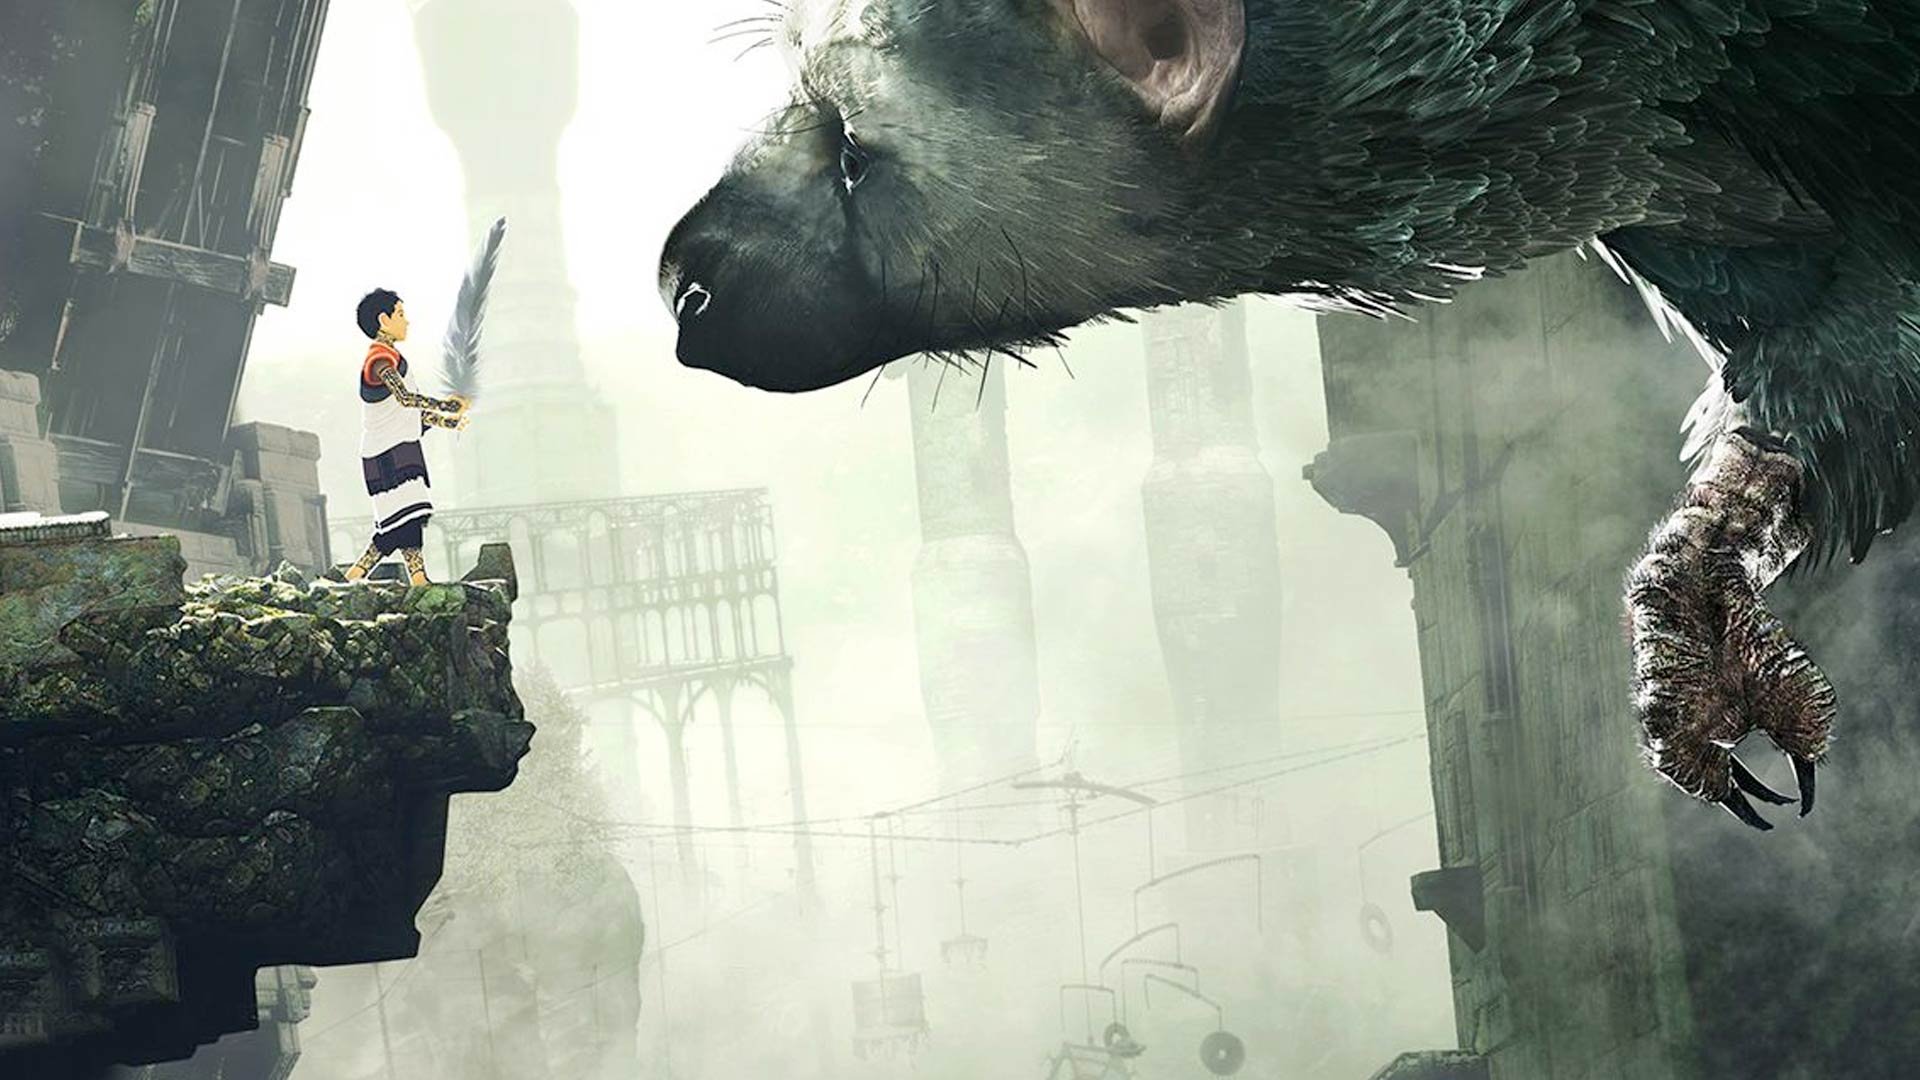 Doctor Girl Wallpaper The Last Guardian 2016 After The Credits Mediastinger